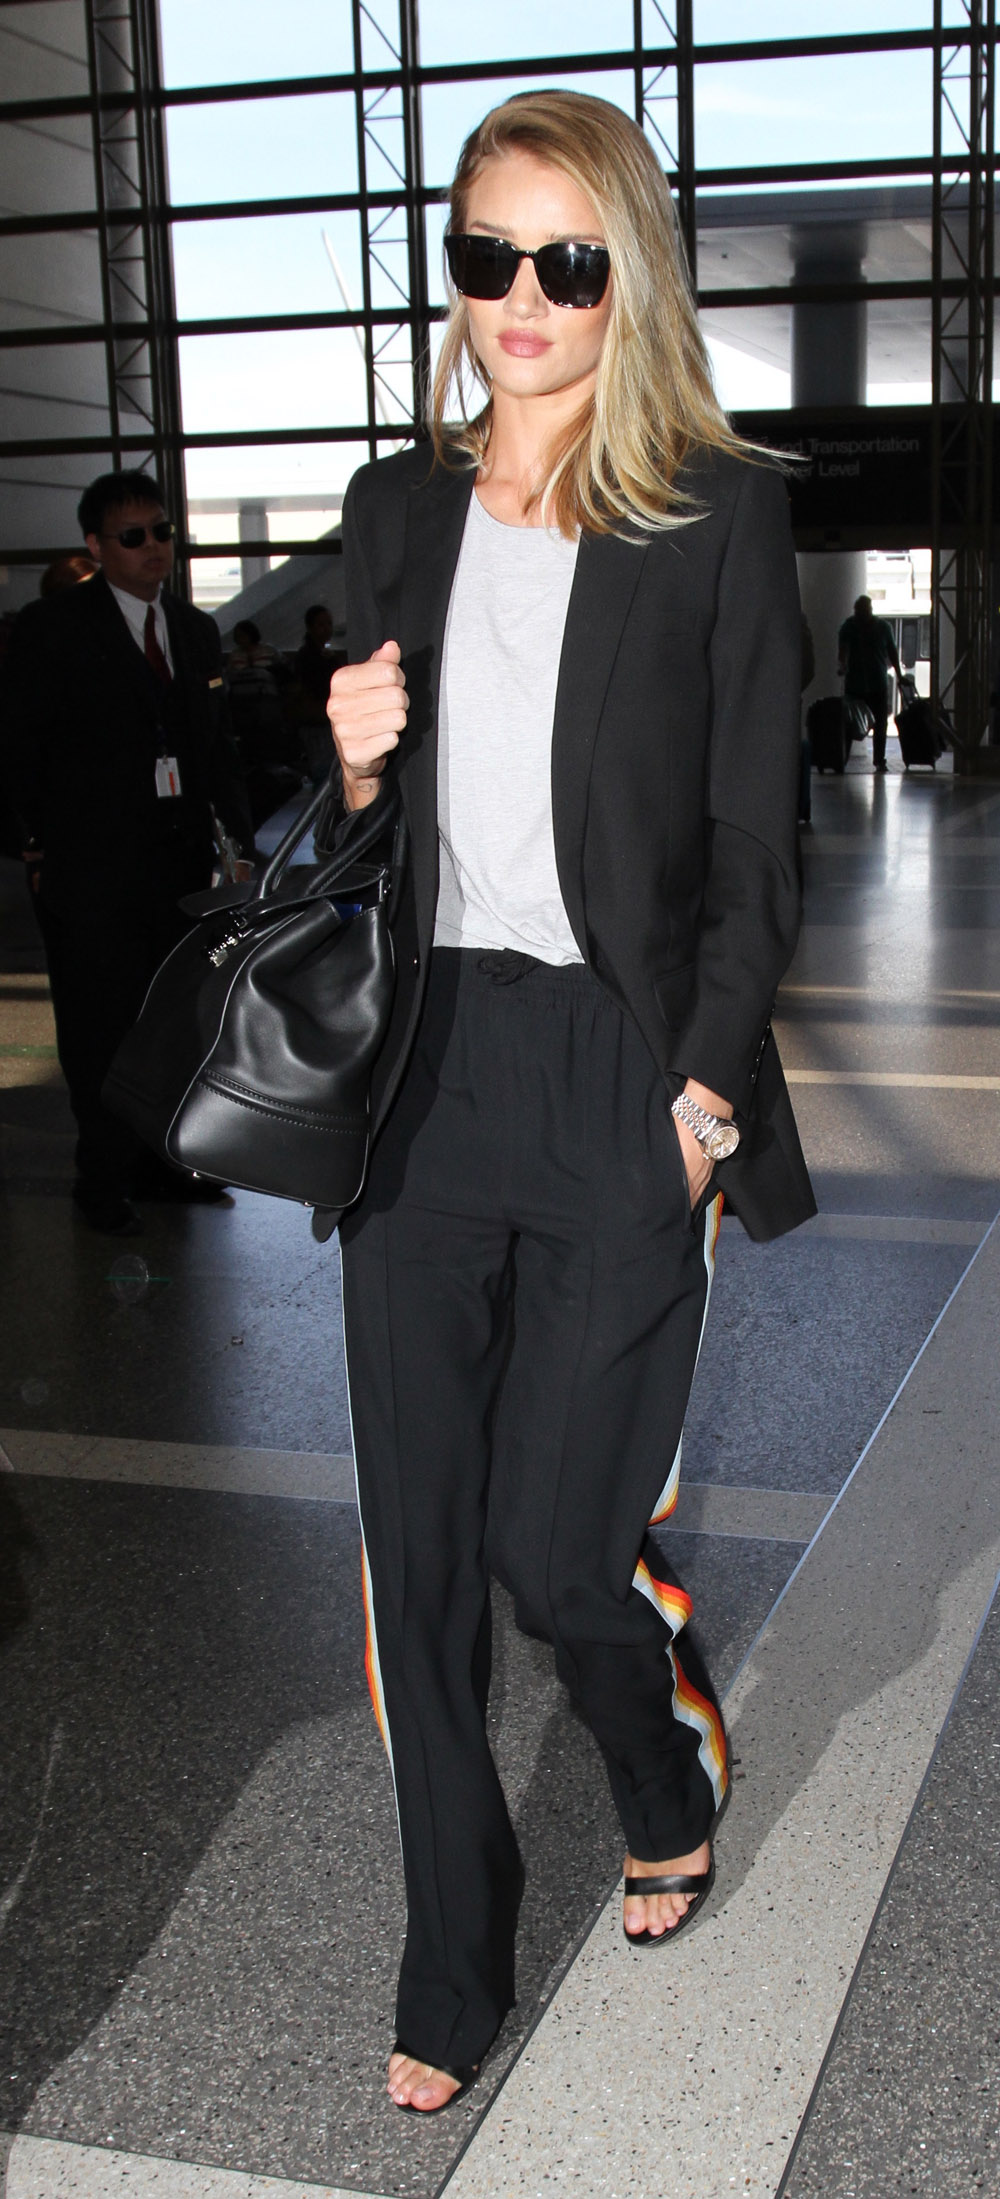 Rosie Huntington Whiteley departs from Los Angeles International AirportFeaturing: Rosie Huntington WhiteleyWhere: Los Angeles, California, United StatesWhen: 05 Apr 2016Credit: WENN.com